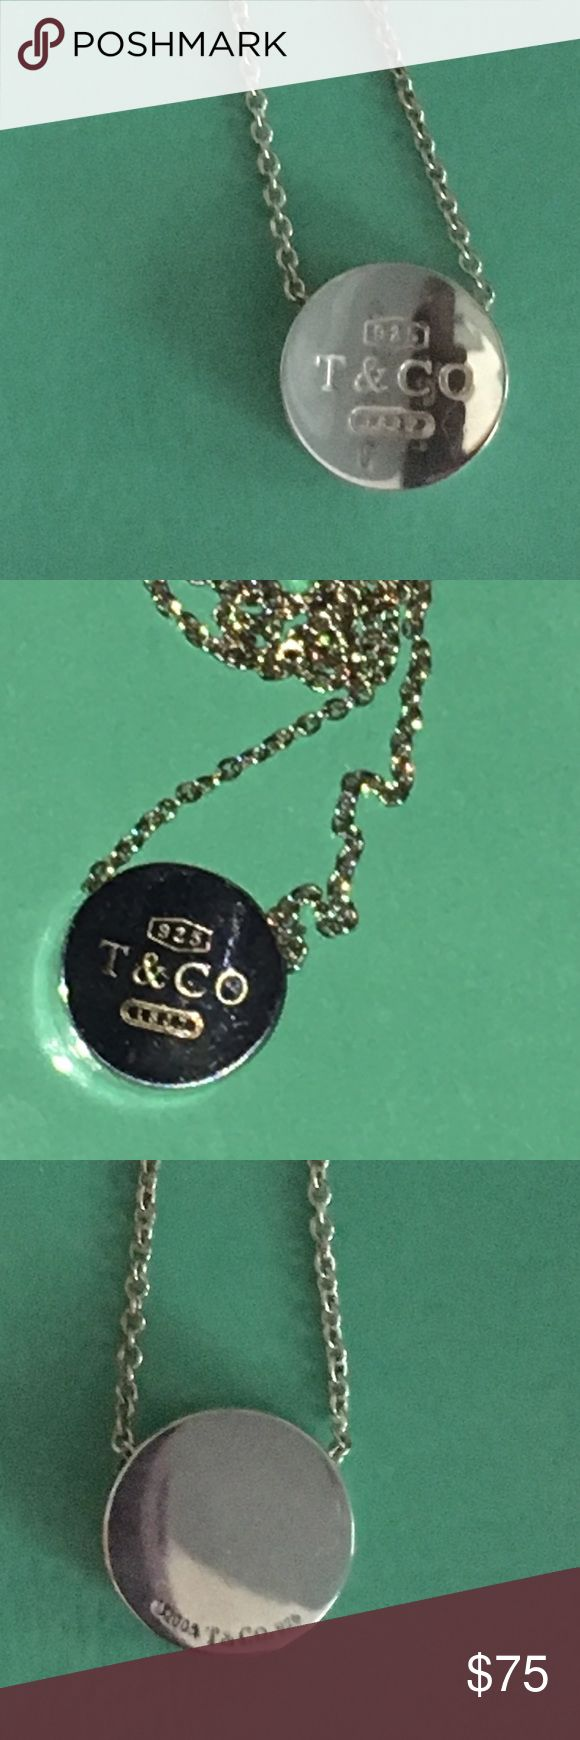 """925 Tiffany and Co Concave necklace *RARE* 16"""" great used condition. Perfect staple to any wardrobe! Accepting reasonable offers too through the offer button. Don't miss out on this great piece at an amazing price ! Tiffany & Co. Jewelry Necklaces"""